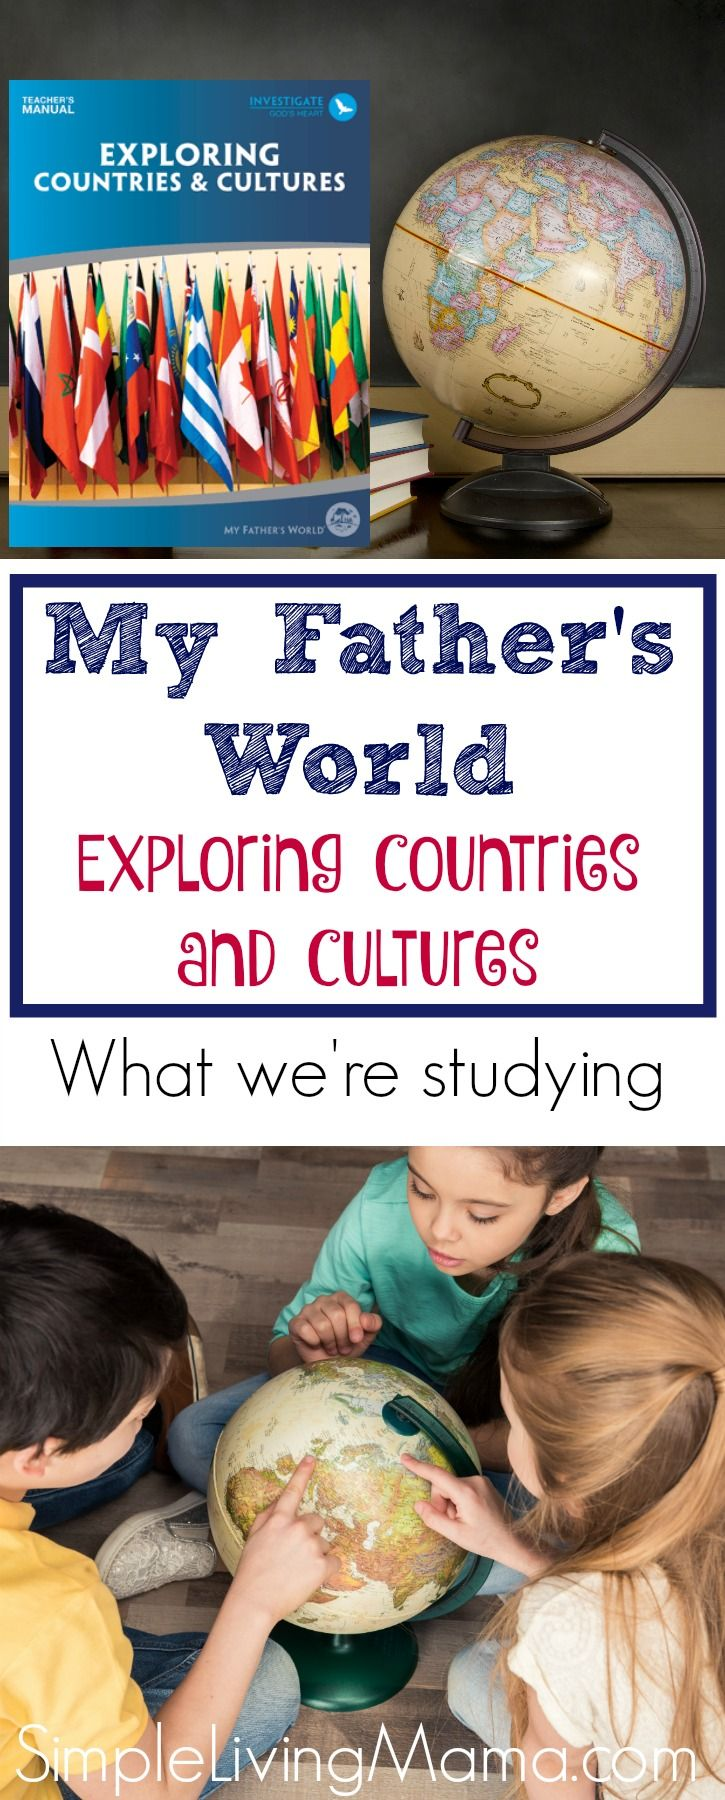 Learn what we are studying this year with My Father's World Exploring Countries and Cultures.